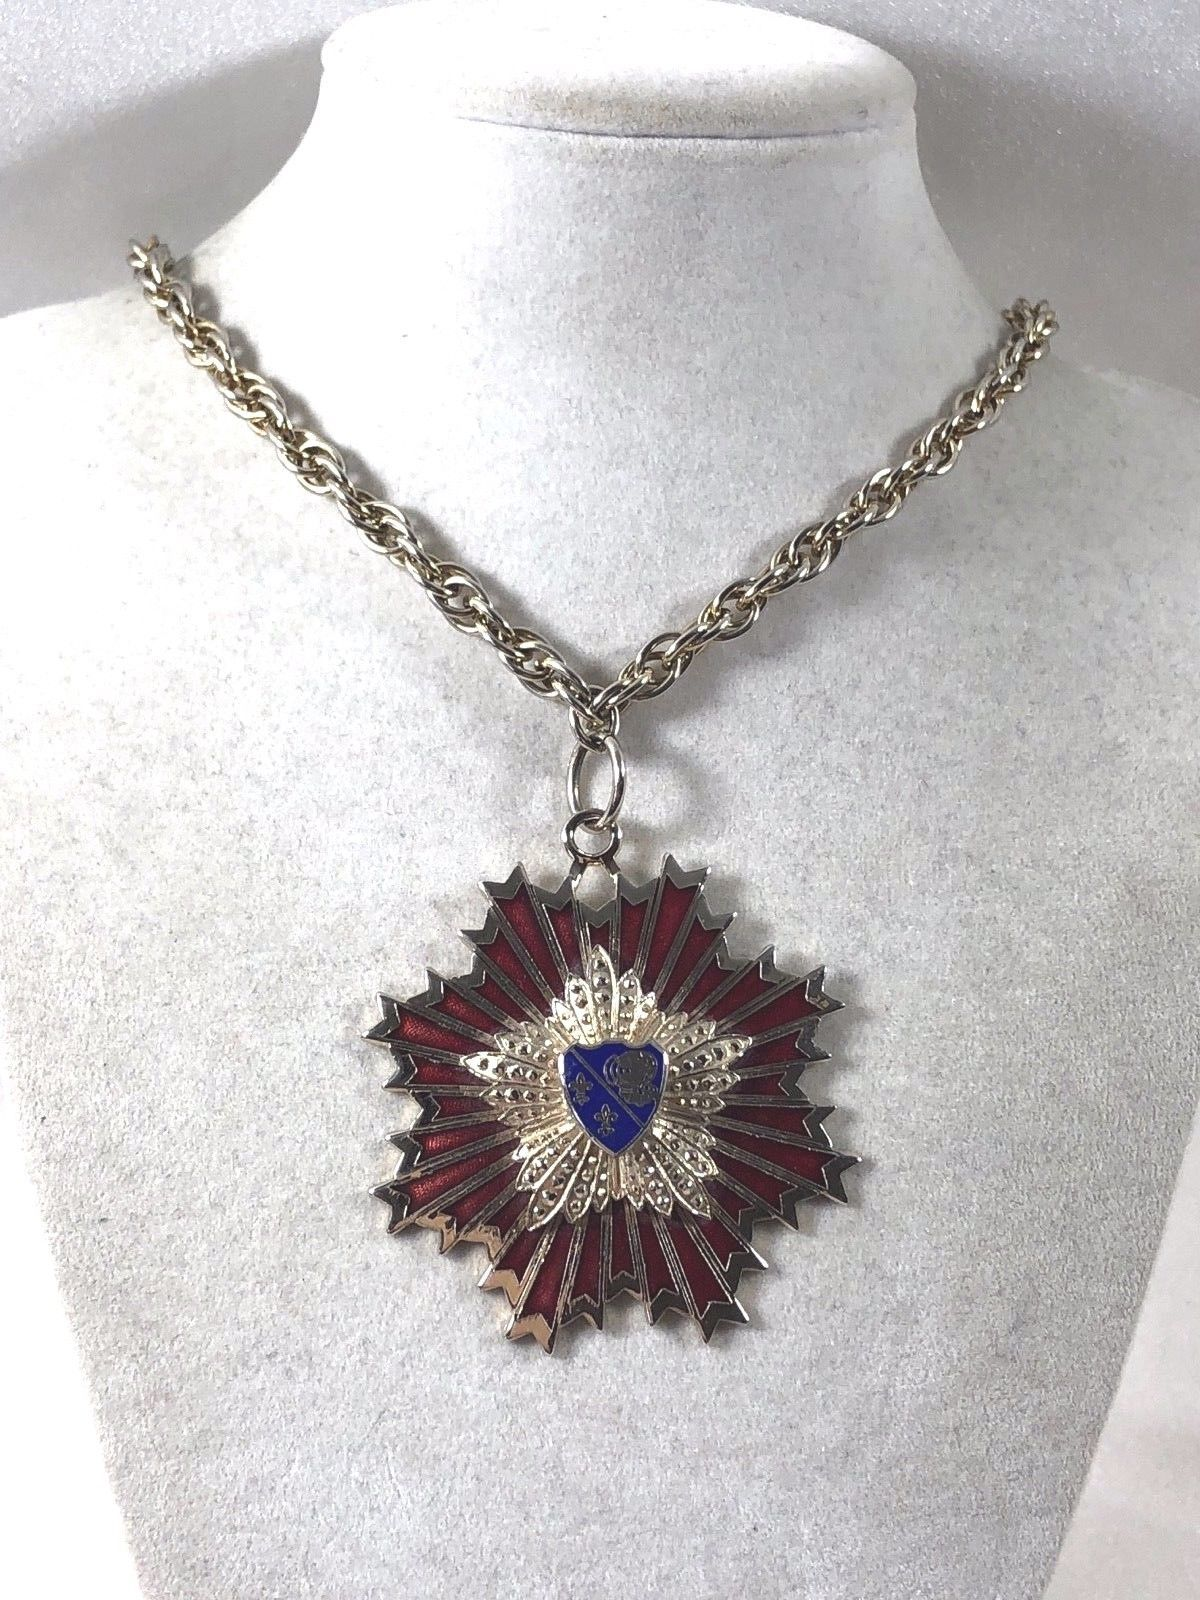 VTG silver color metal Enamel chain necklace code of arms star burst pendant